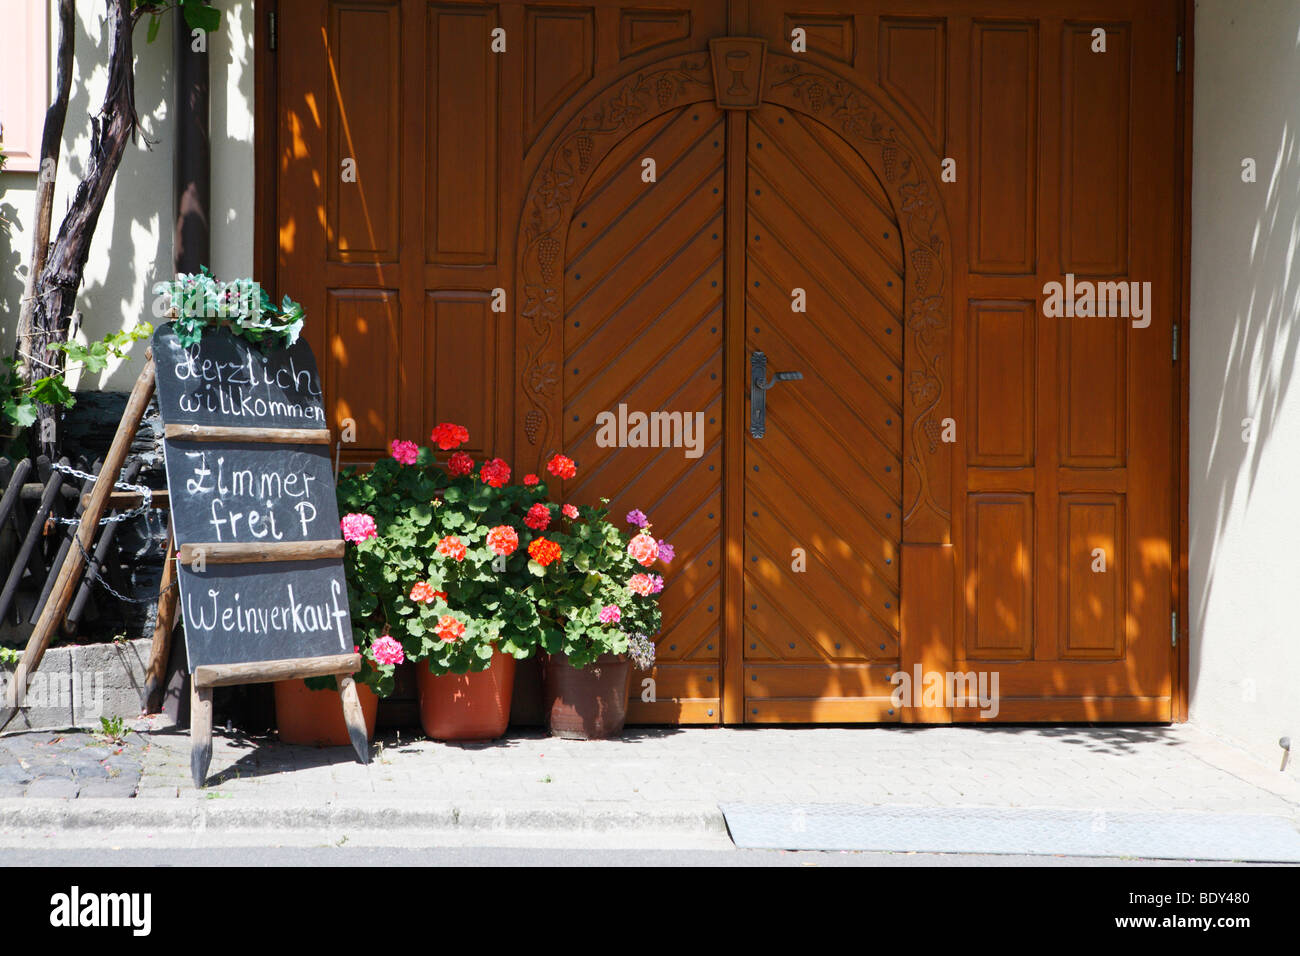 Old wooden door in Kues with a sign for room rental and wine sales, Bernkastel-Kues, Rhineland-Palatinate, Germany, - Stock Image